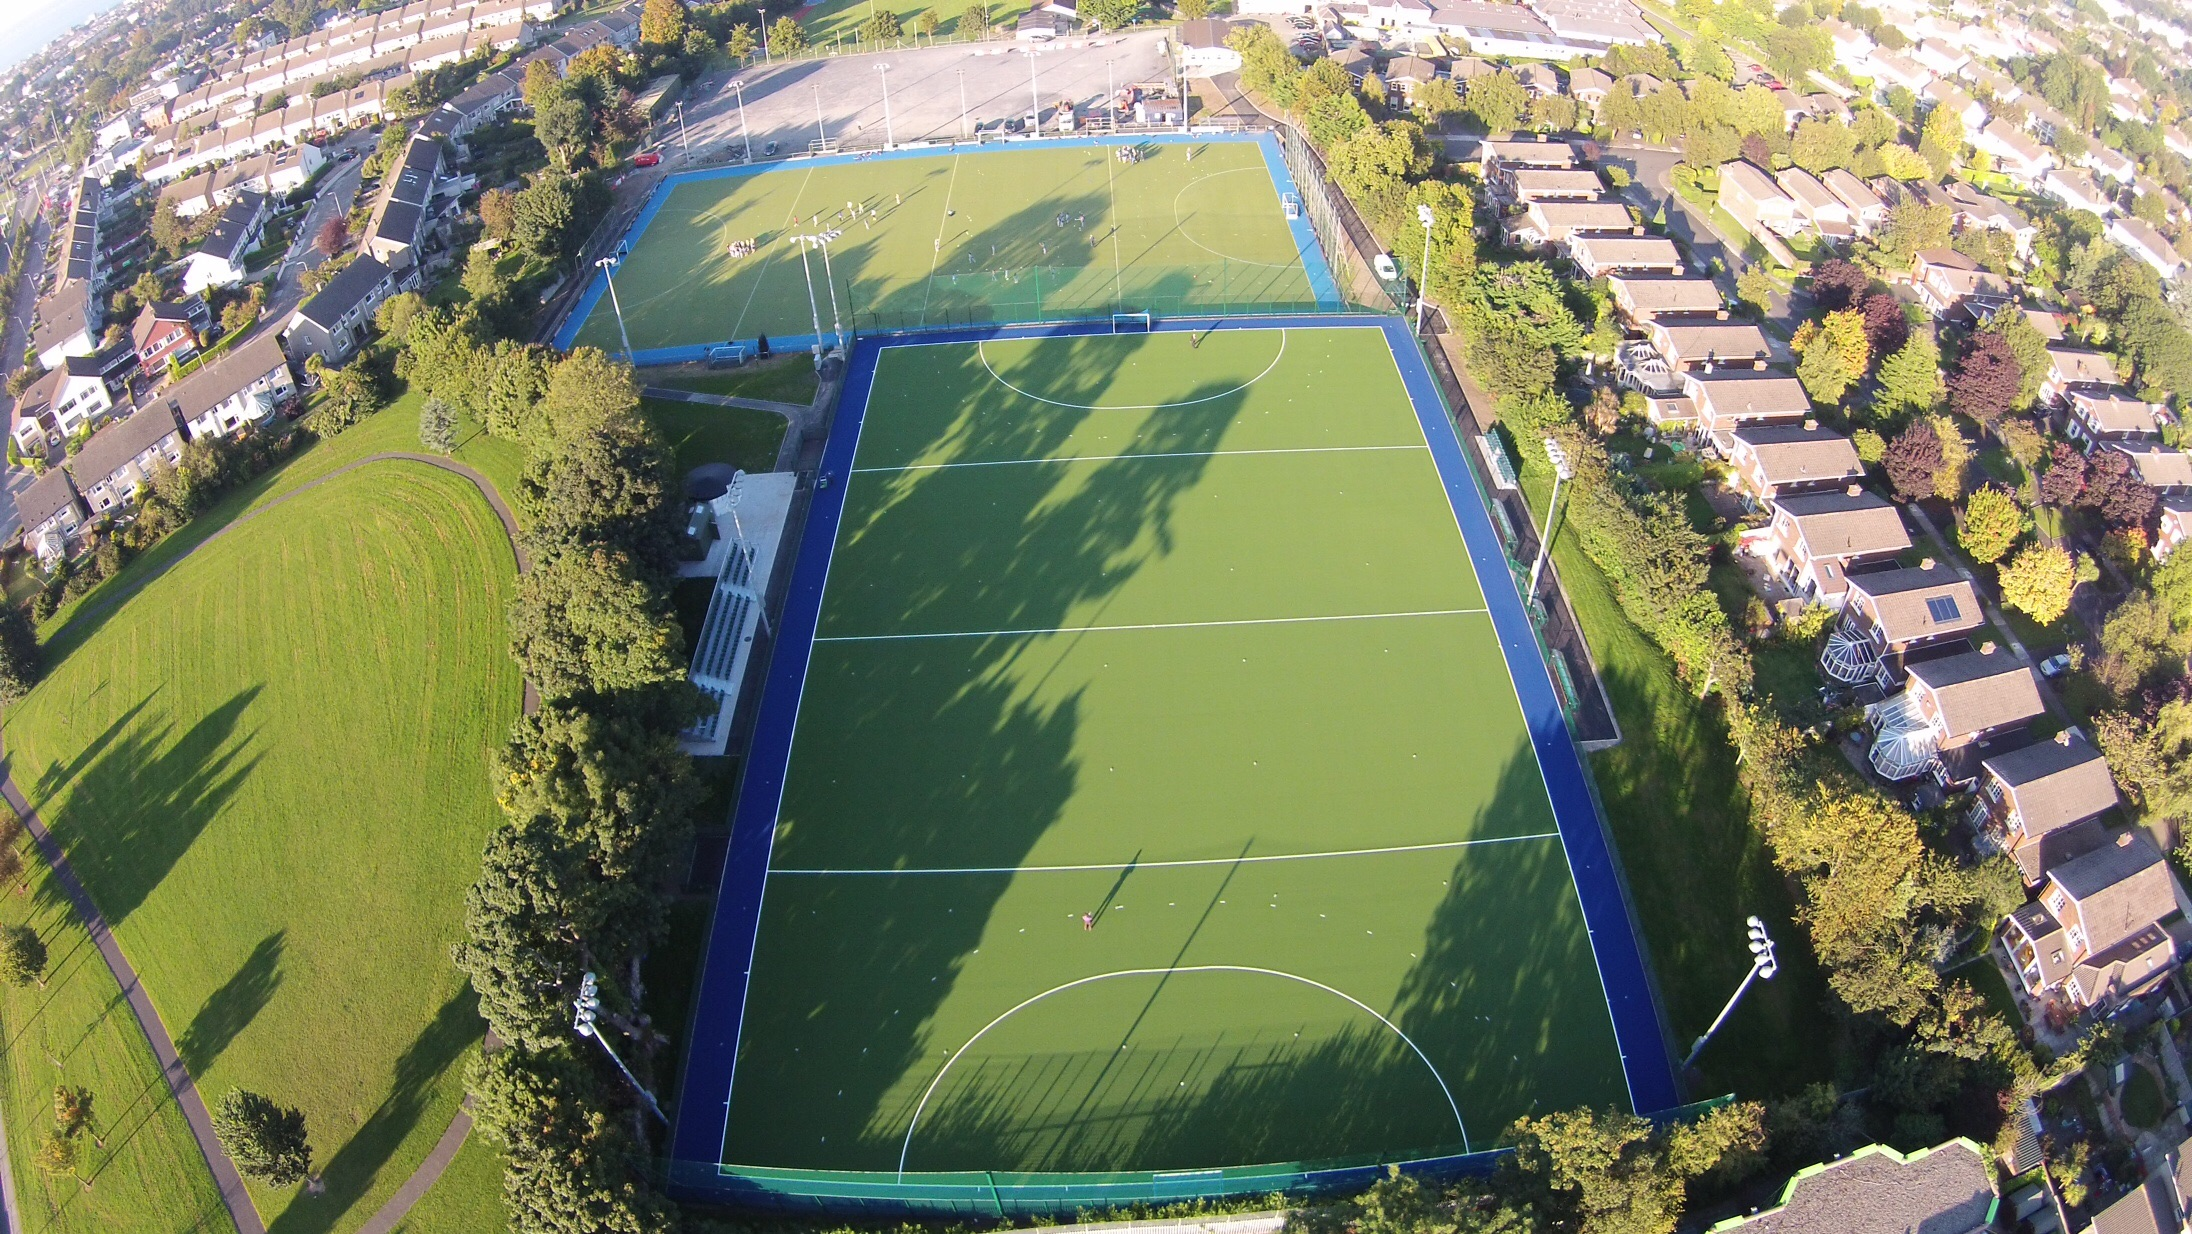 Birds eye view of the pitch